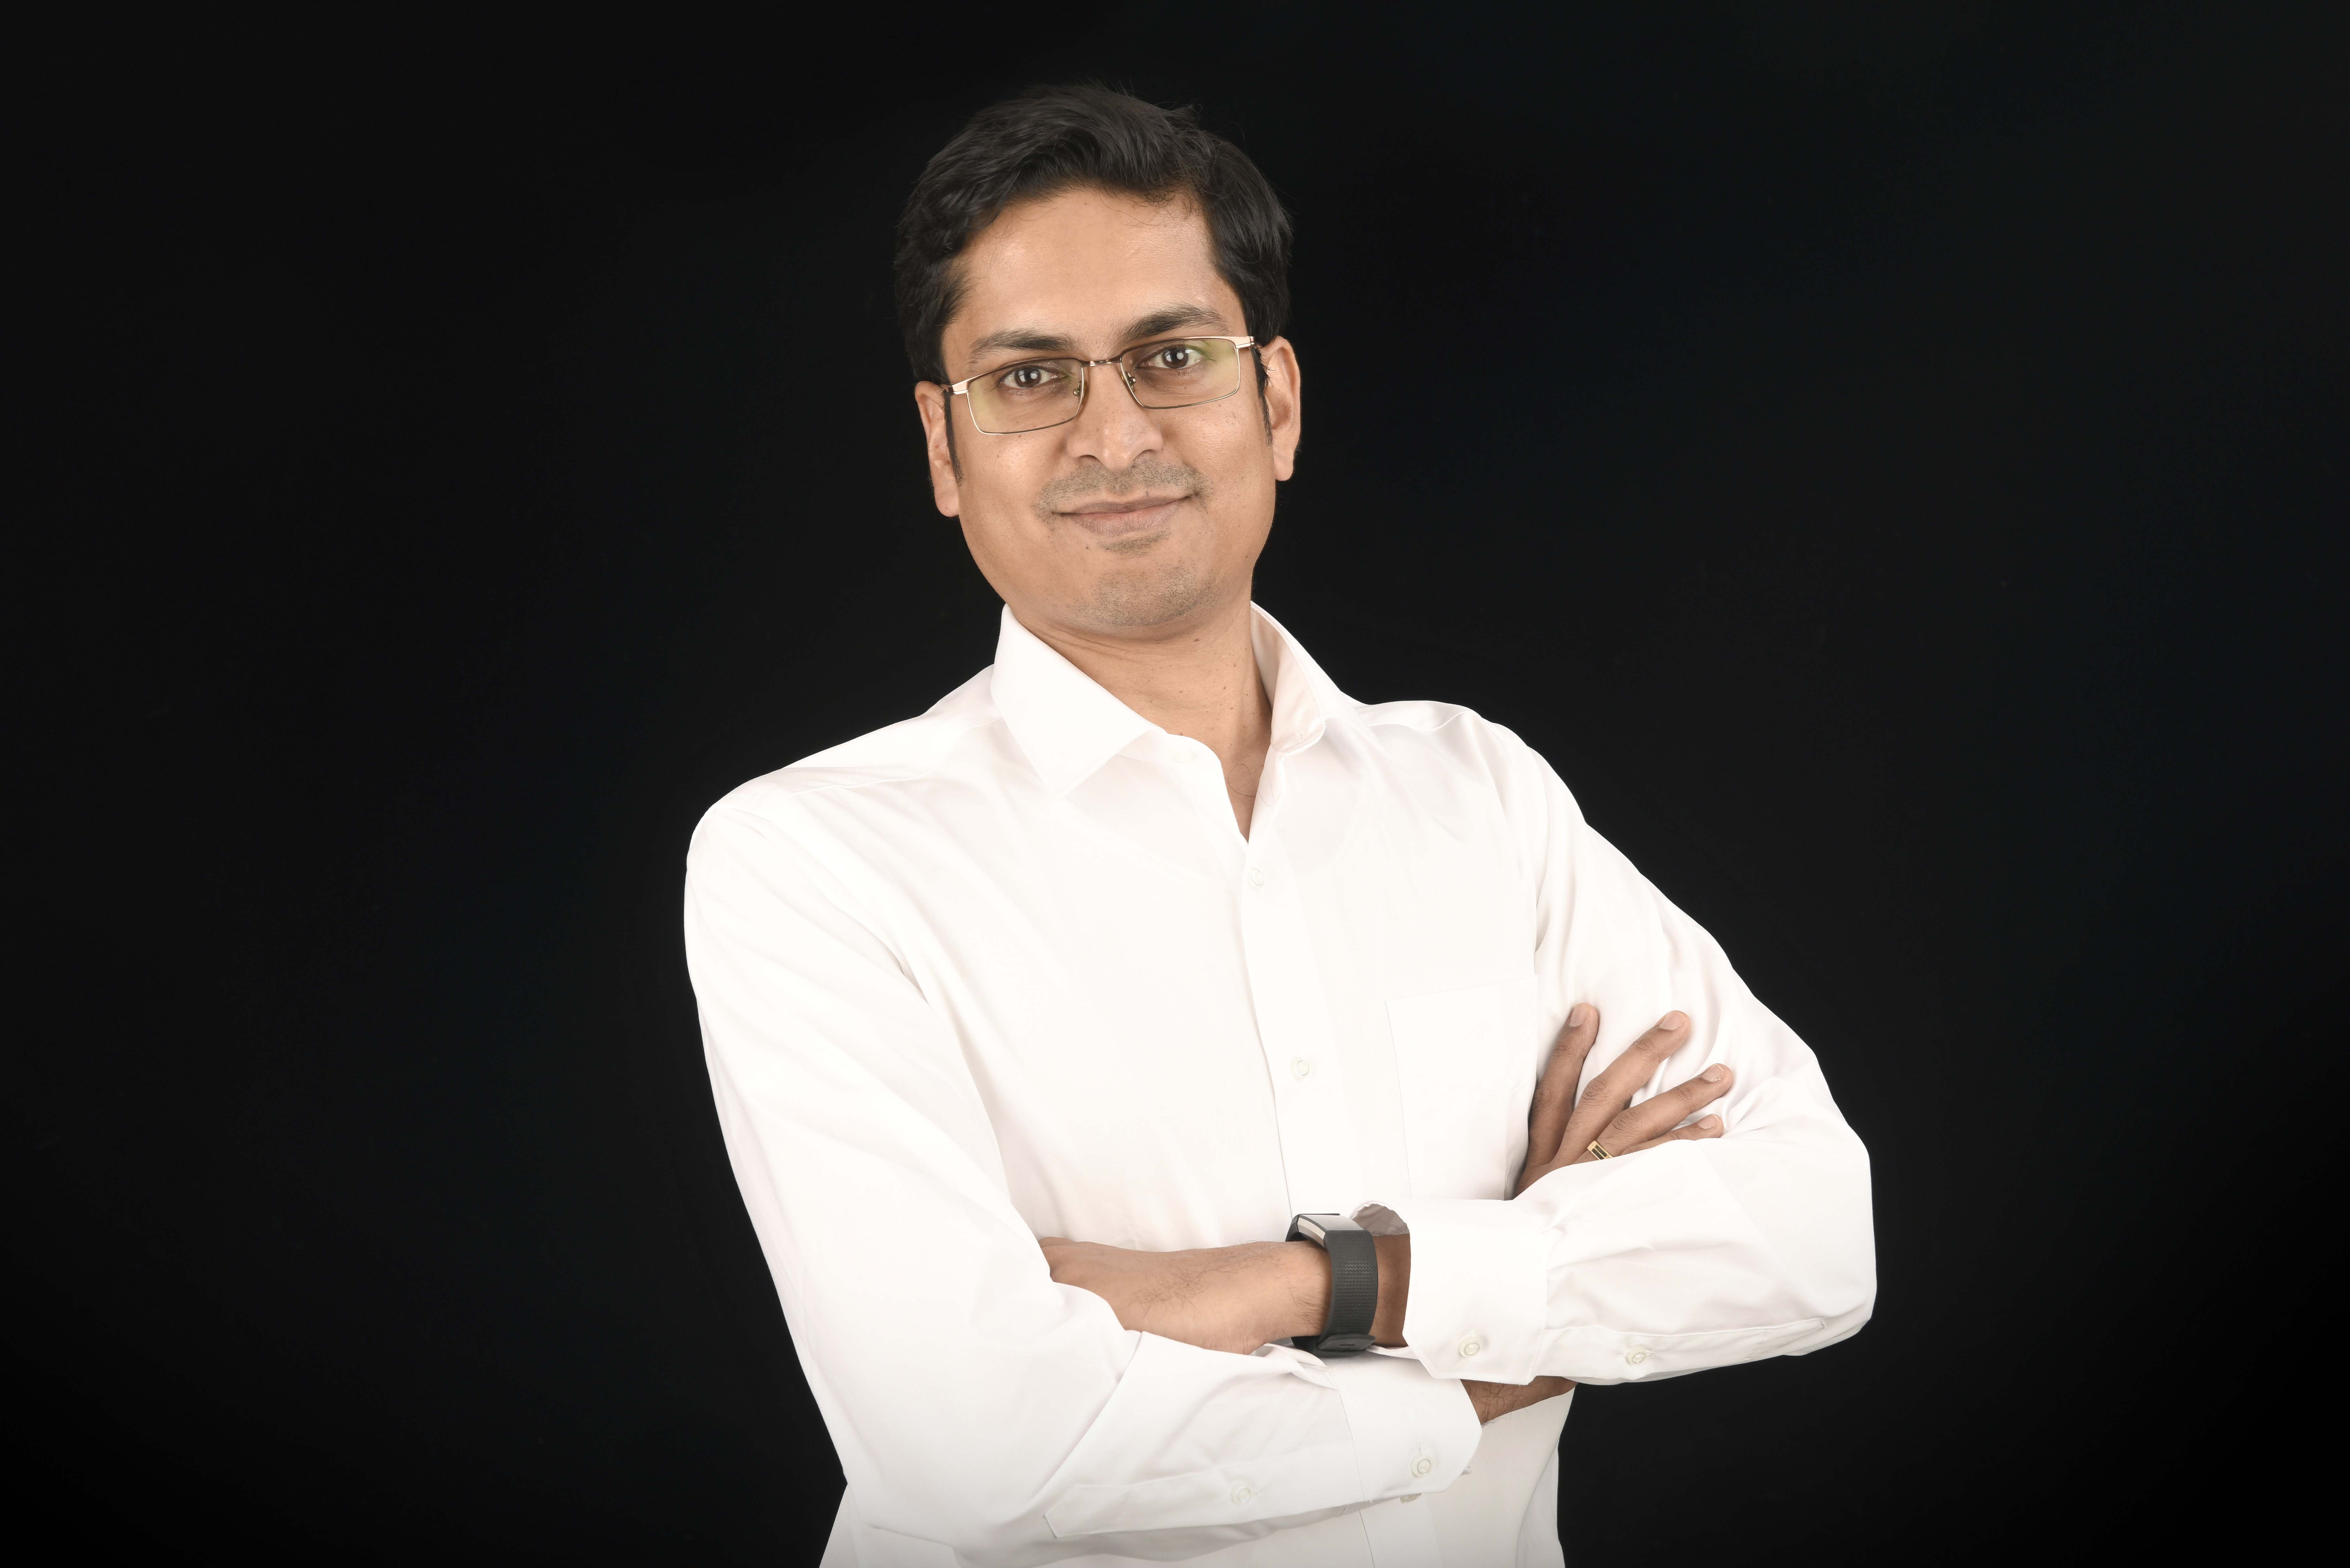 Ashwin Balasubramanian - Co-founder of Cove Kotturpuram